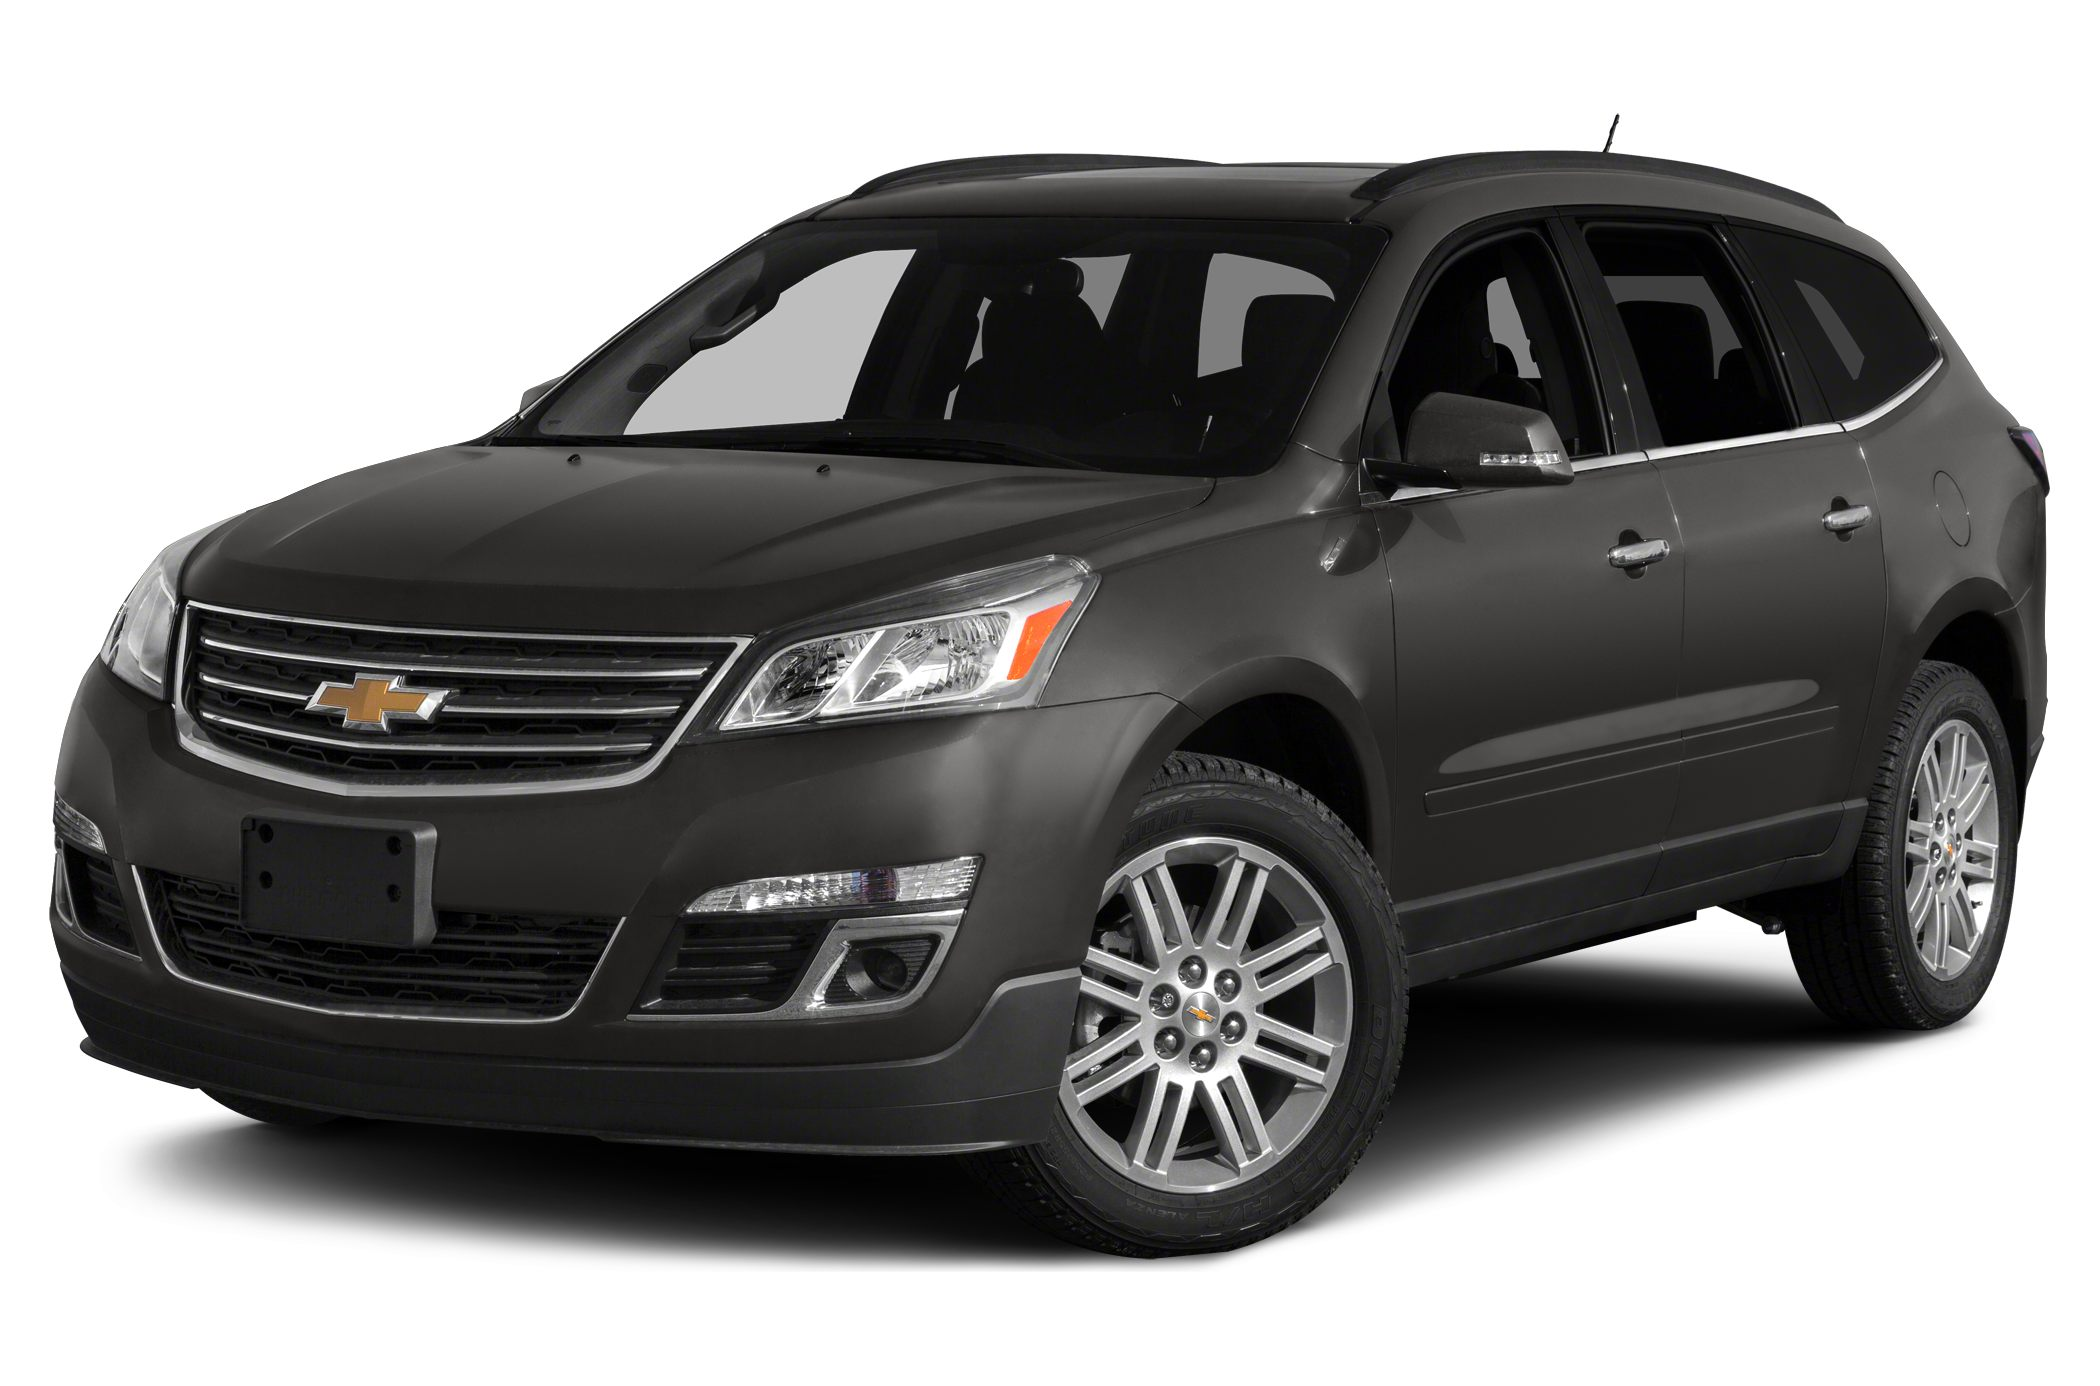 2015 Chevrolet Traverse 1LT SUV for sale in Westfield for $39,530 with 0 miles